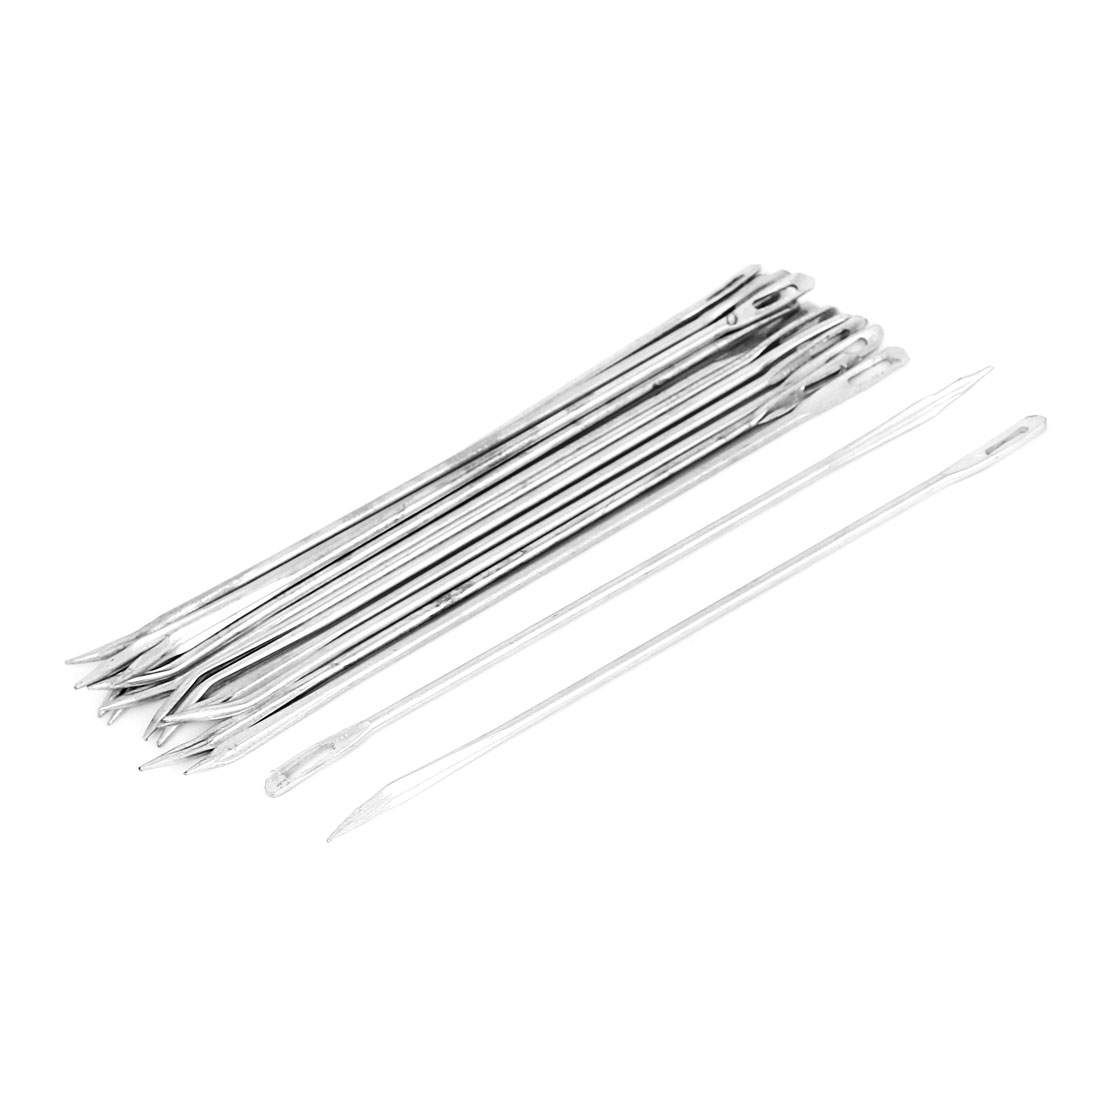 15Pcs Curved Head Upholstery Repair Metal Sewing Needles for Canvas Leather